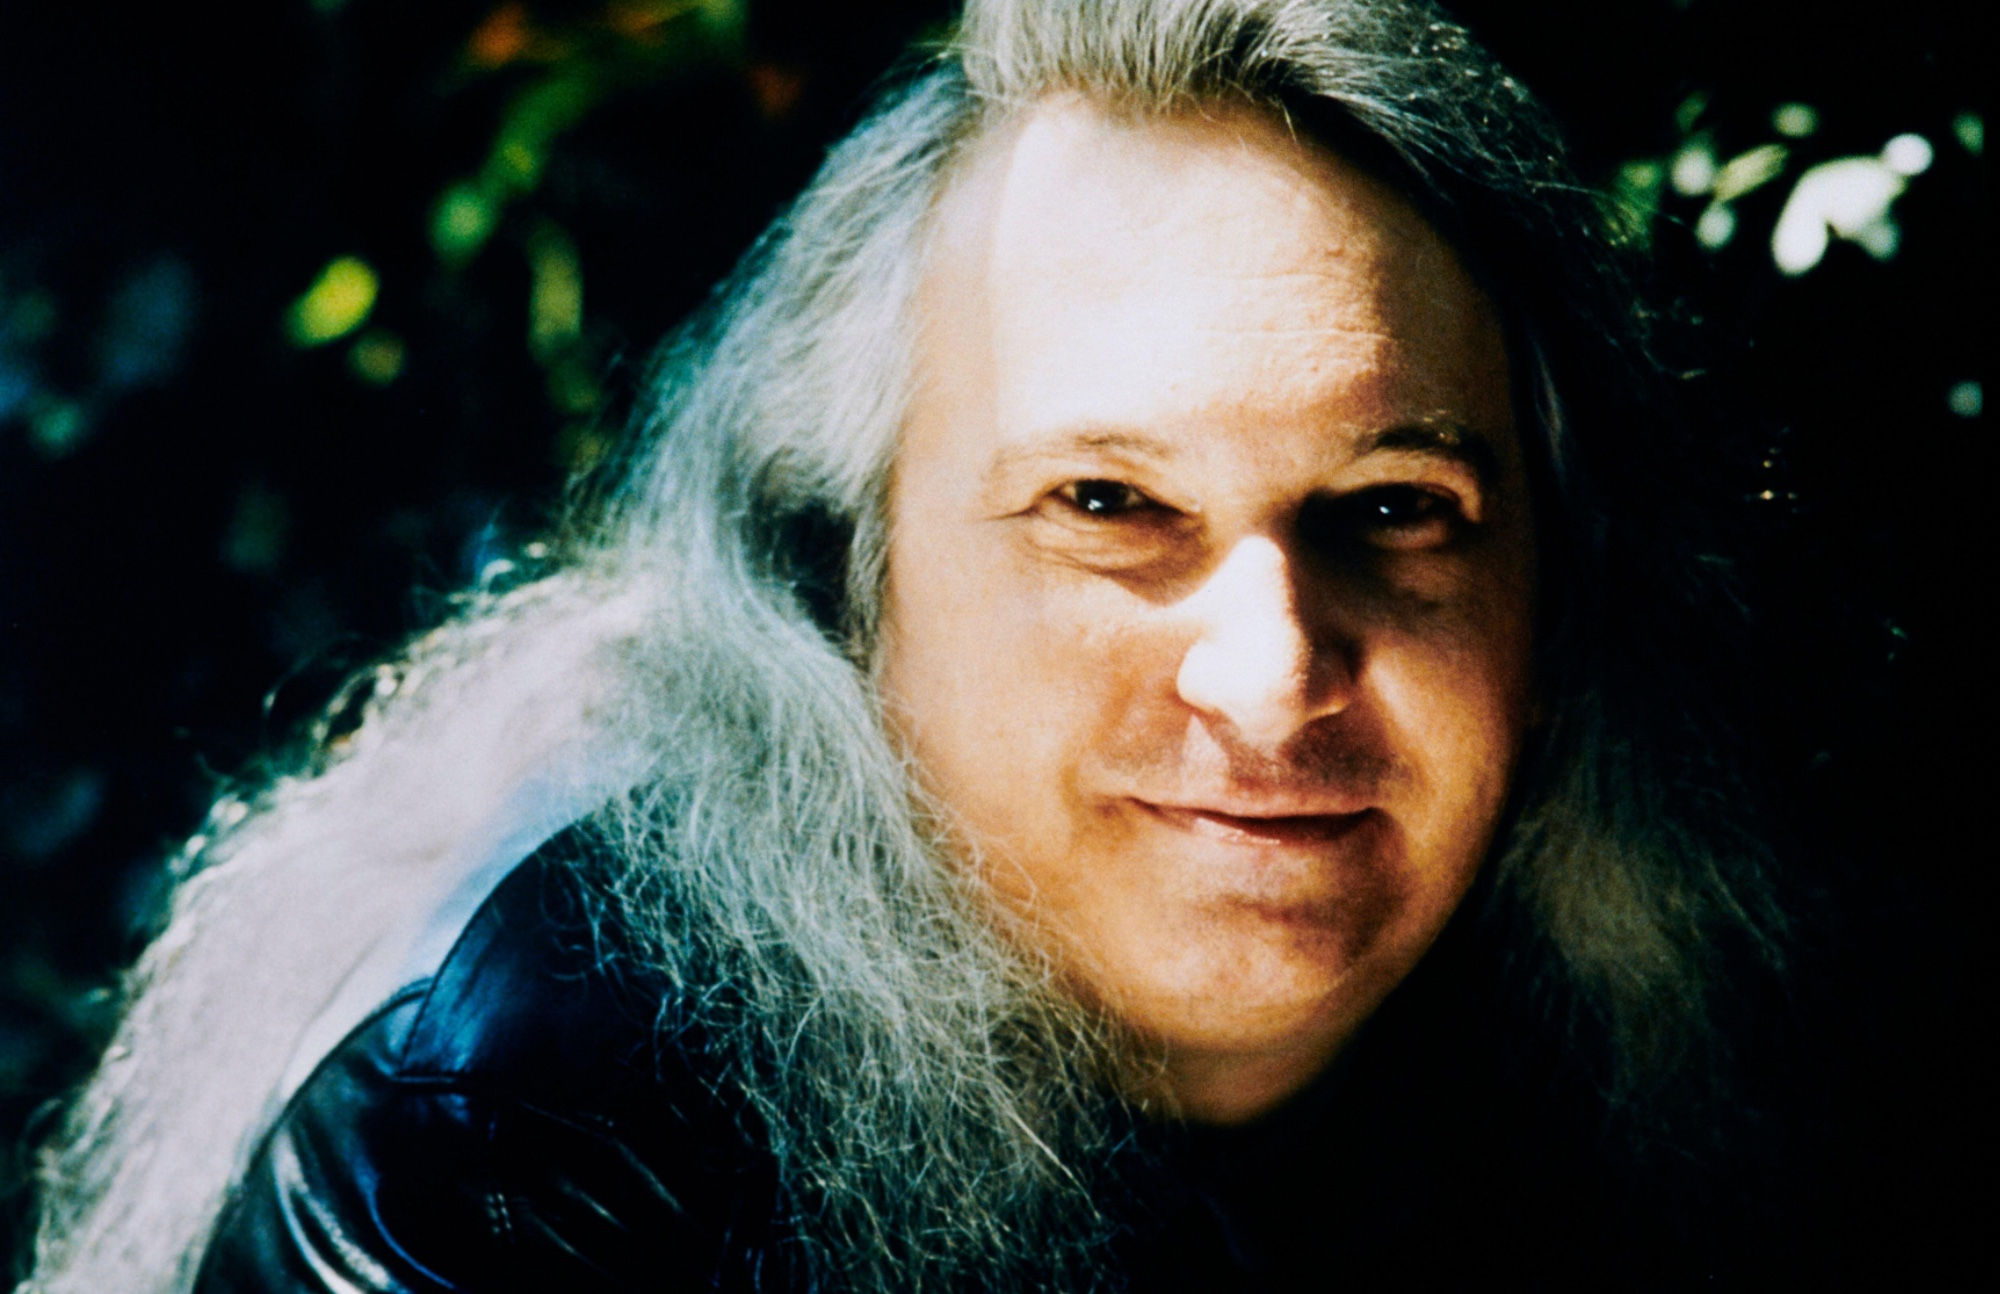 Composer and music producer Jim Steinman has died